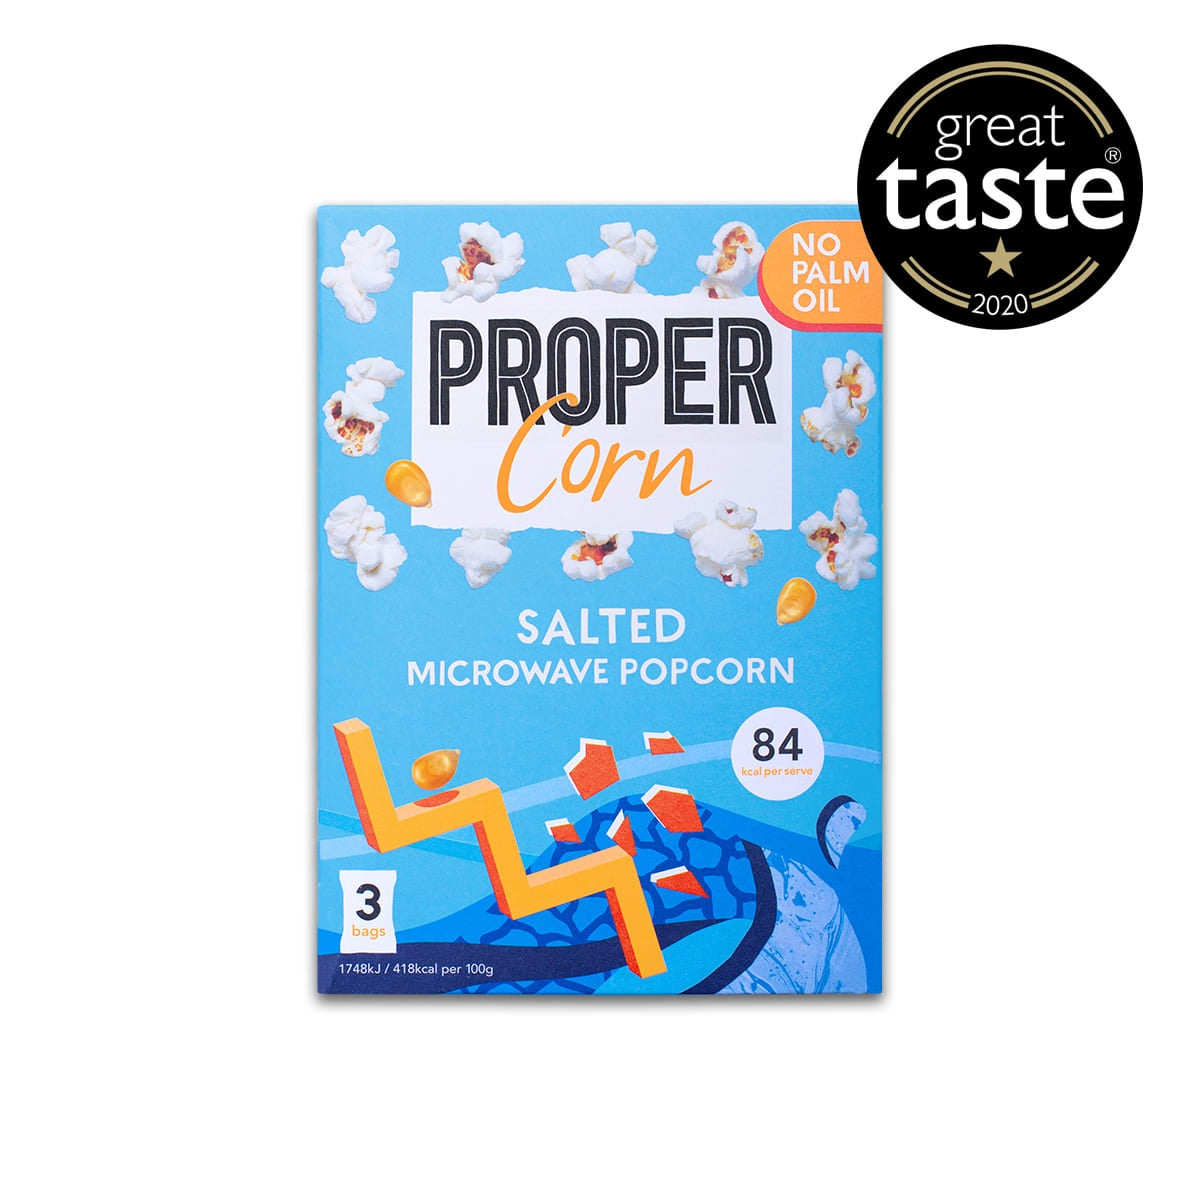 Propercorn Salted Microwave Popcorn, 3x 70g bags of salted microwavable popcorn, no palm oil, 3 SmartPoints values per serving, gluten free, suitable for vegans